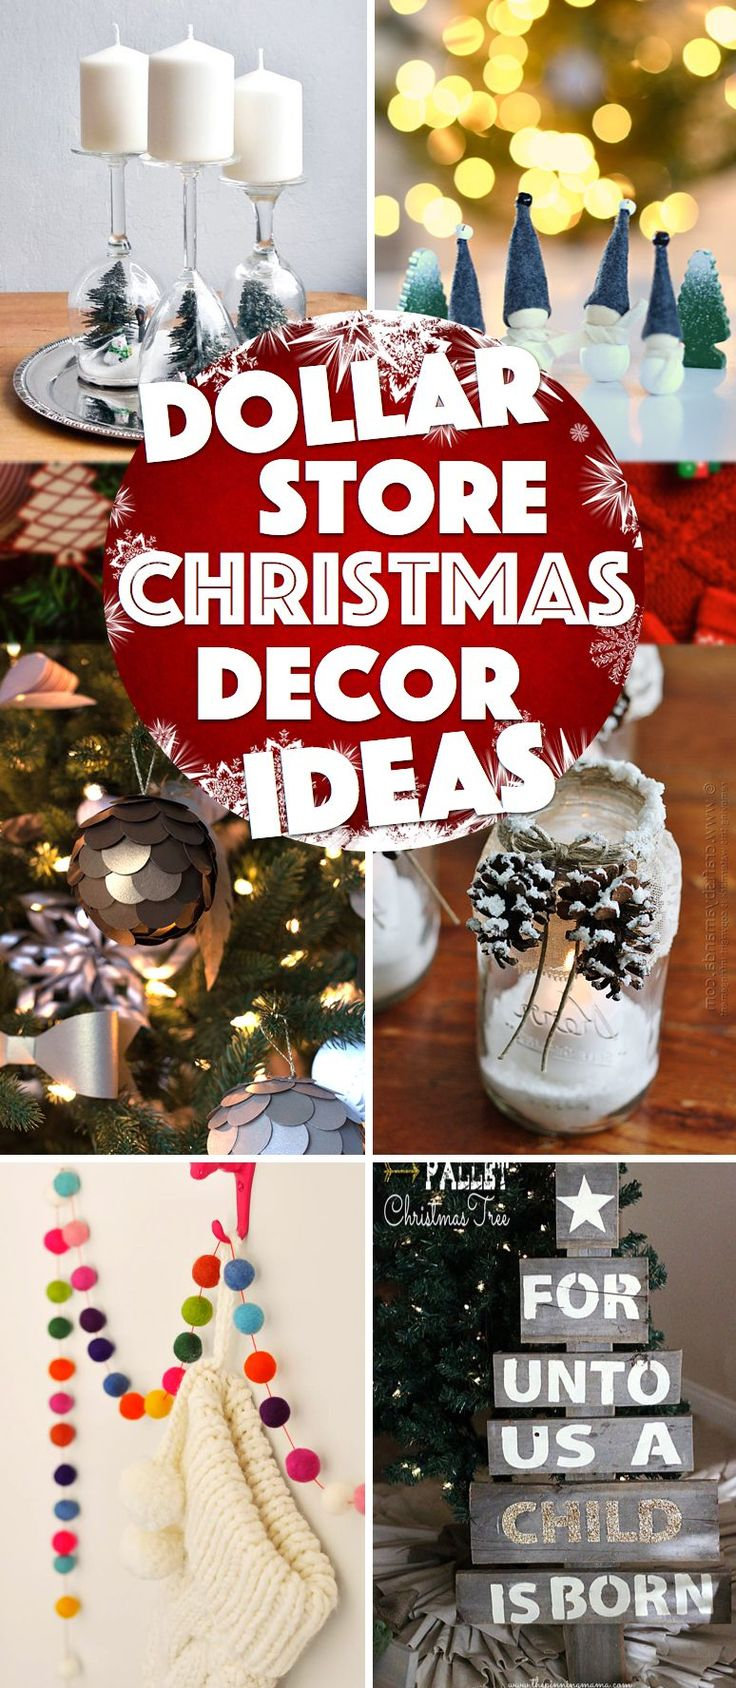 Christmas Decoration Warehouse In Arlington Tx - 39 oh so gorgeous dollar store diy christmas decor ideas to make you scream with joy